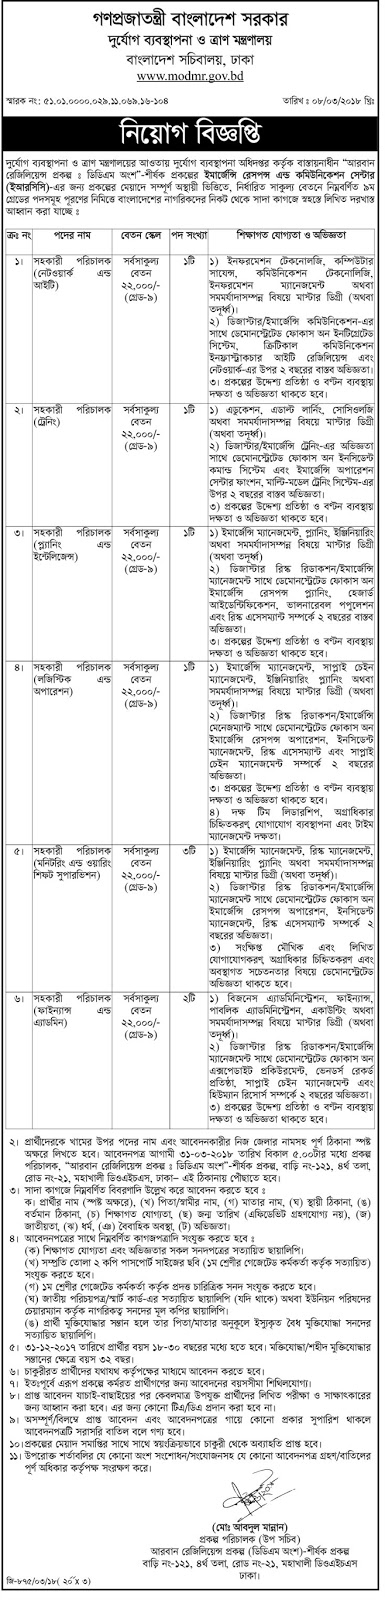 MODMR Assistant Director Recruitment Circular 2018